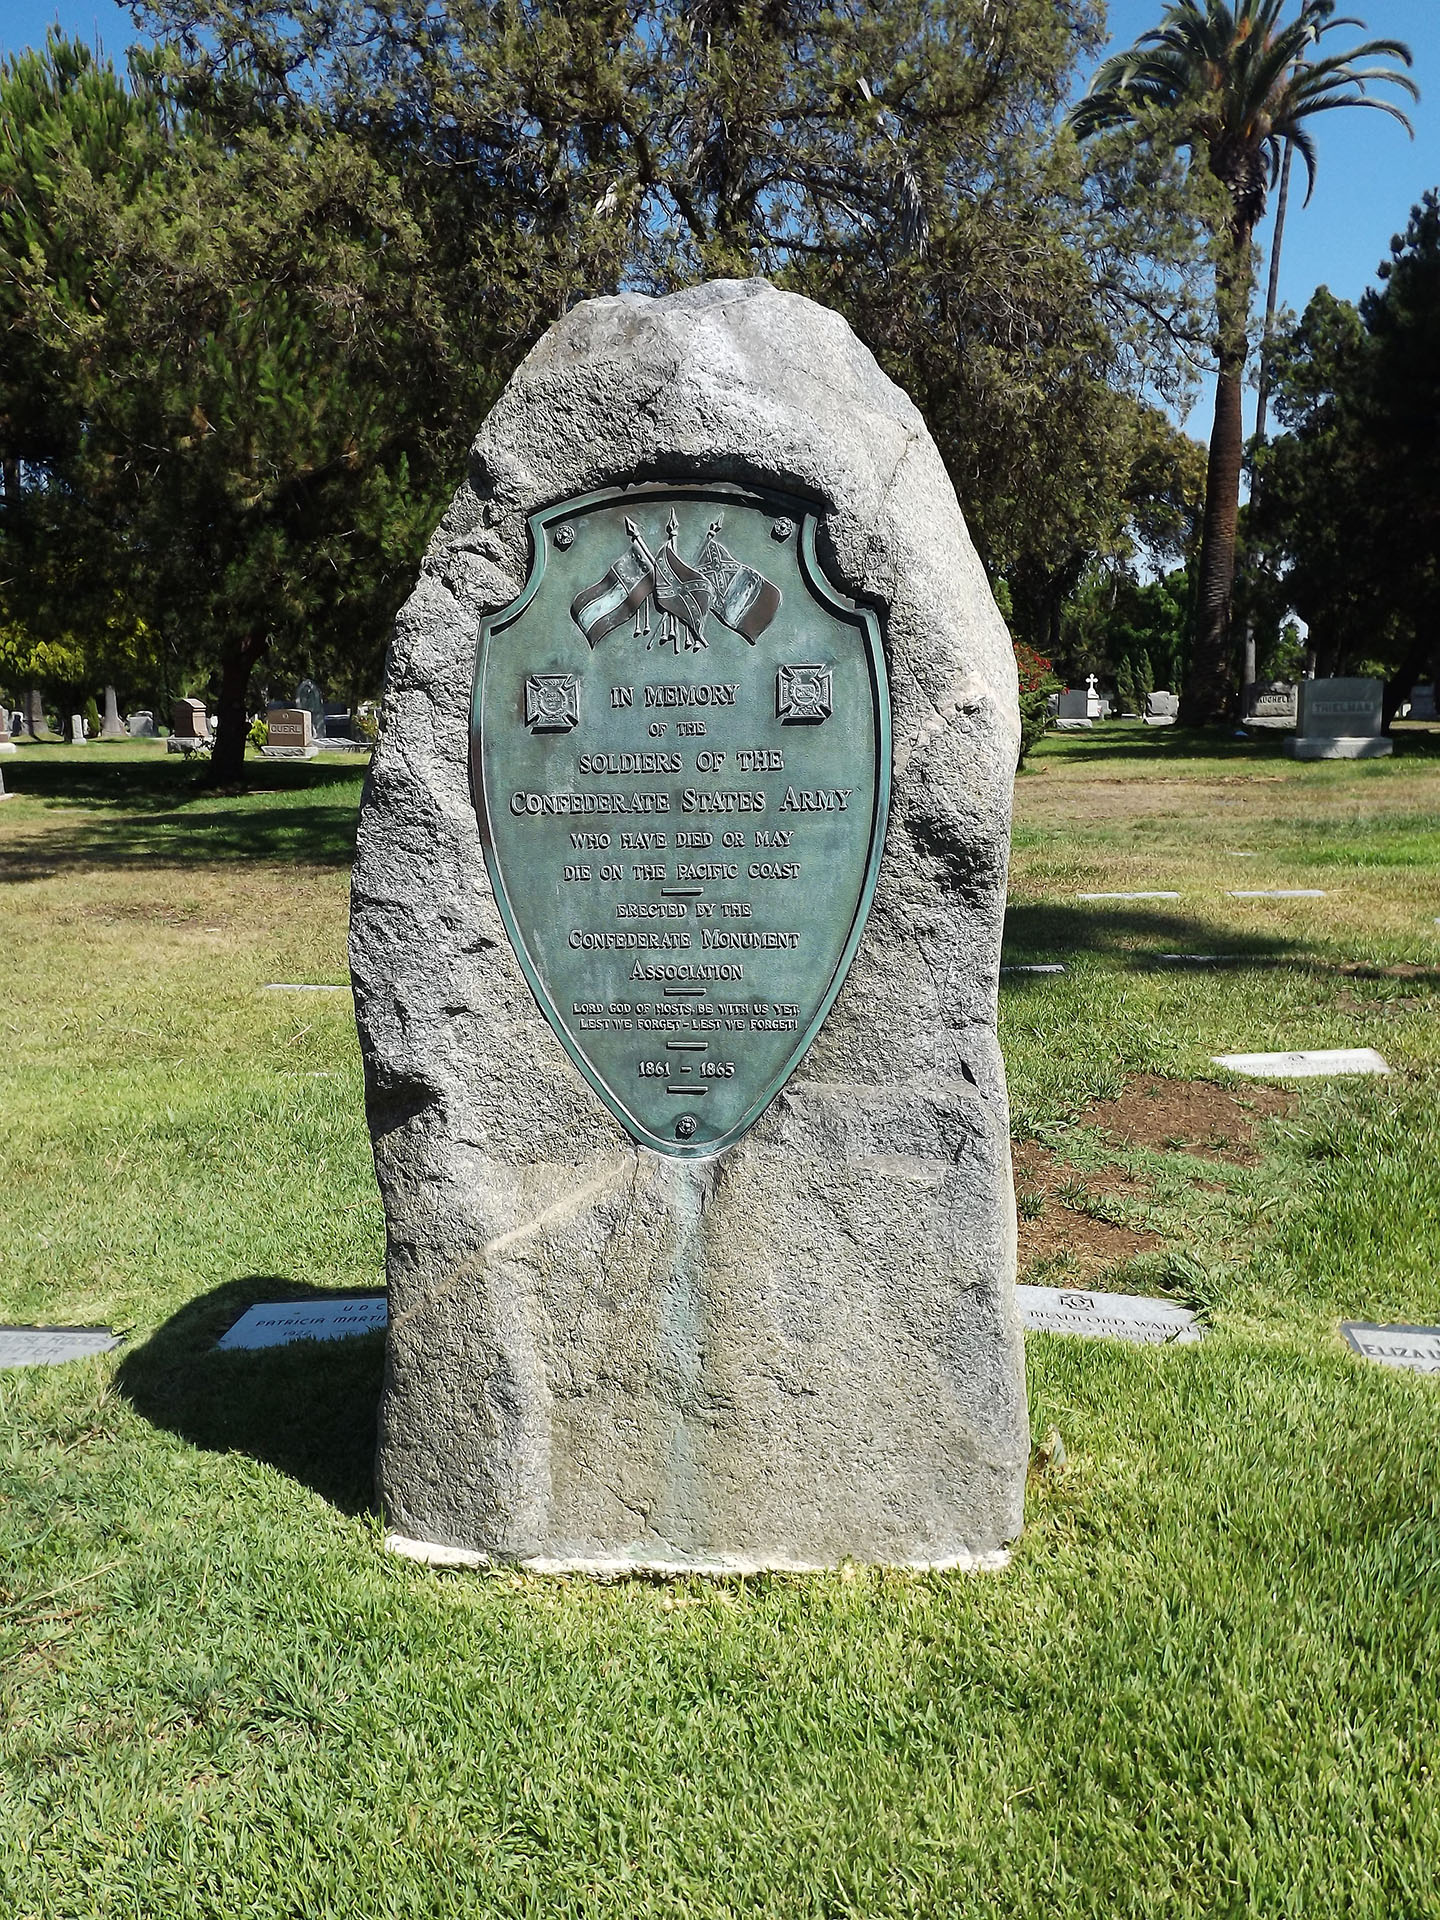 LA, 1 Marker Removed - There was a Confederate monument in the Hollywood Forever Cemetery. It has since been taken down after numerous requests for its removal.